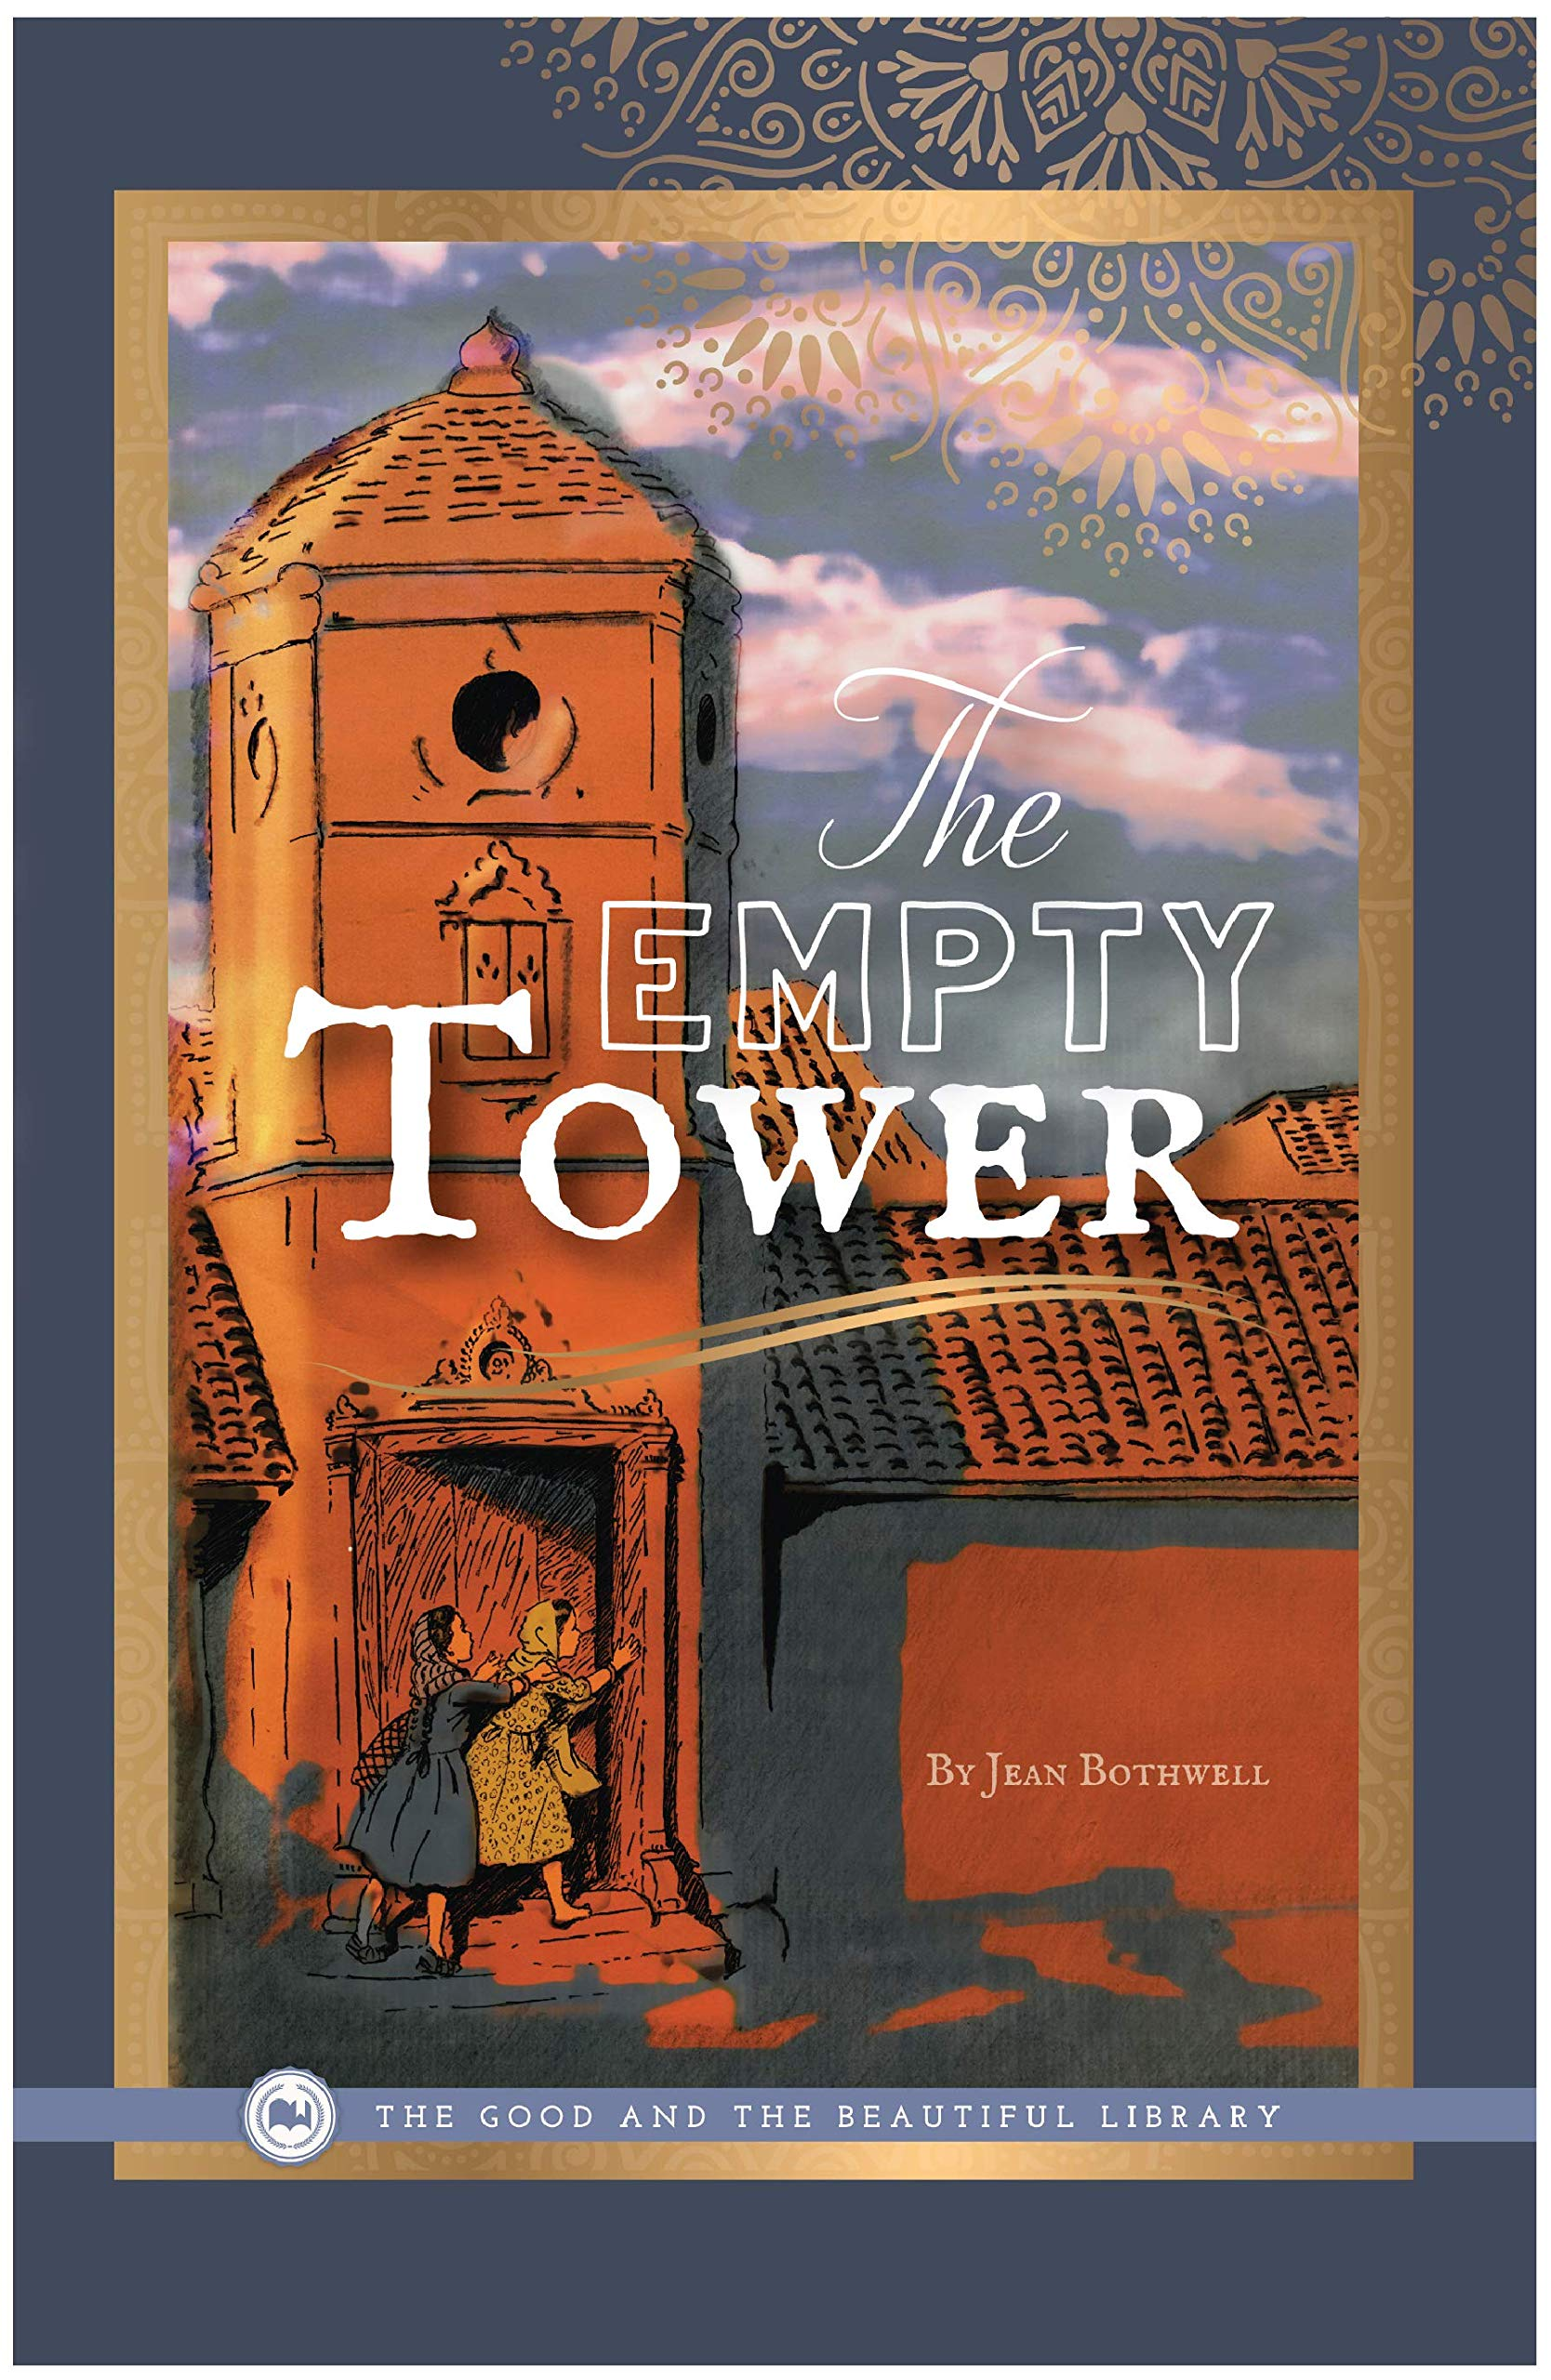 The Empty Tower: Jean Bothwell, The Good and the Beautiful ...